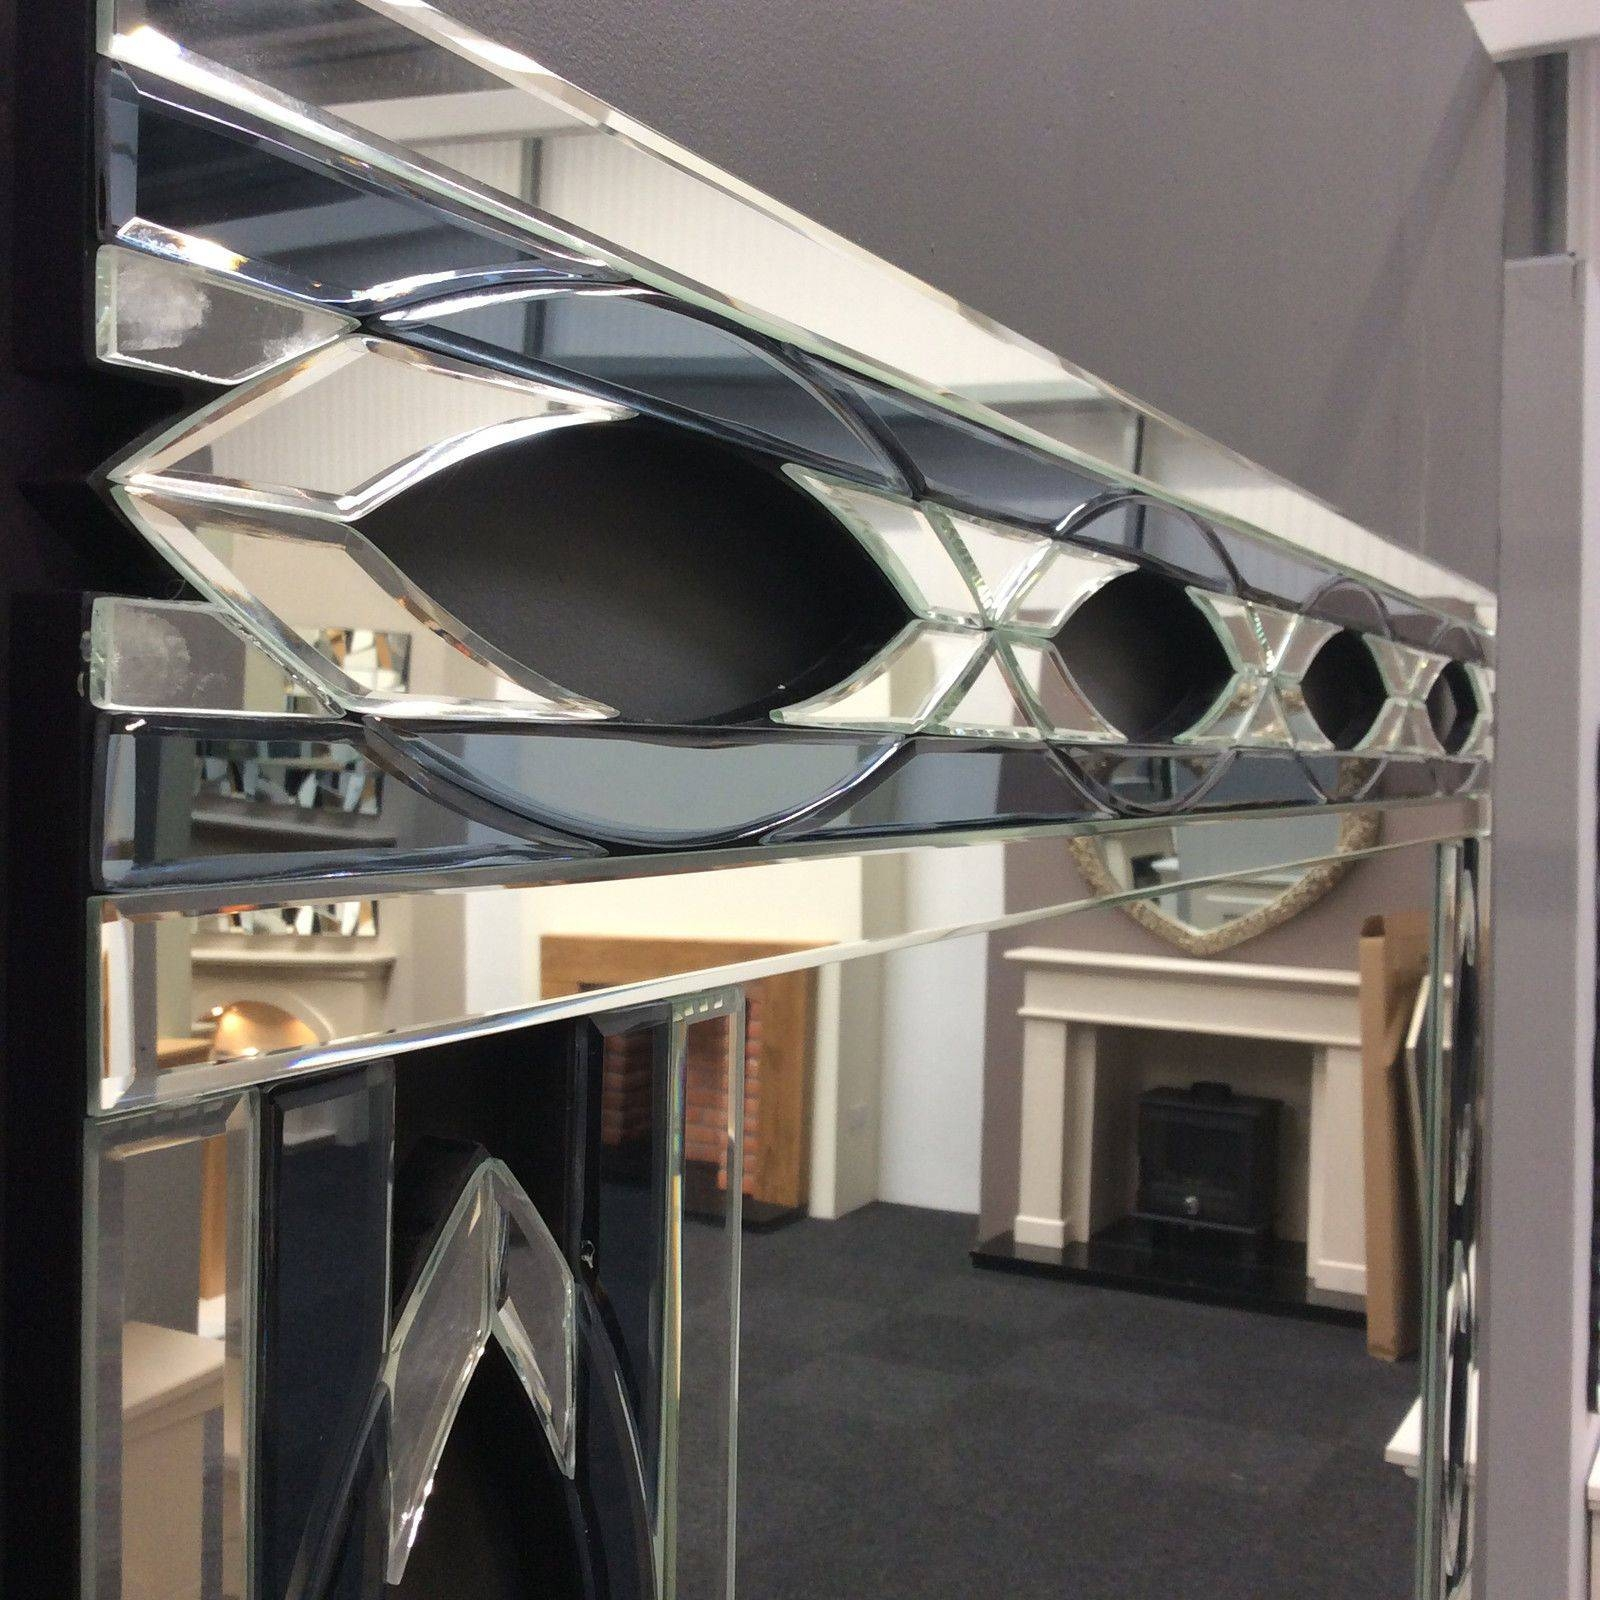 Stunning Contemporary Art Deco Inspired Venetian Mirror - New intended for Art Deco Venetian Mirrors (Image 23 of 25)